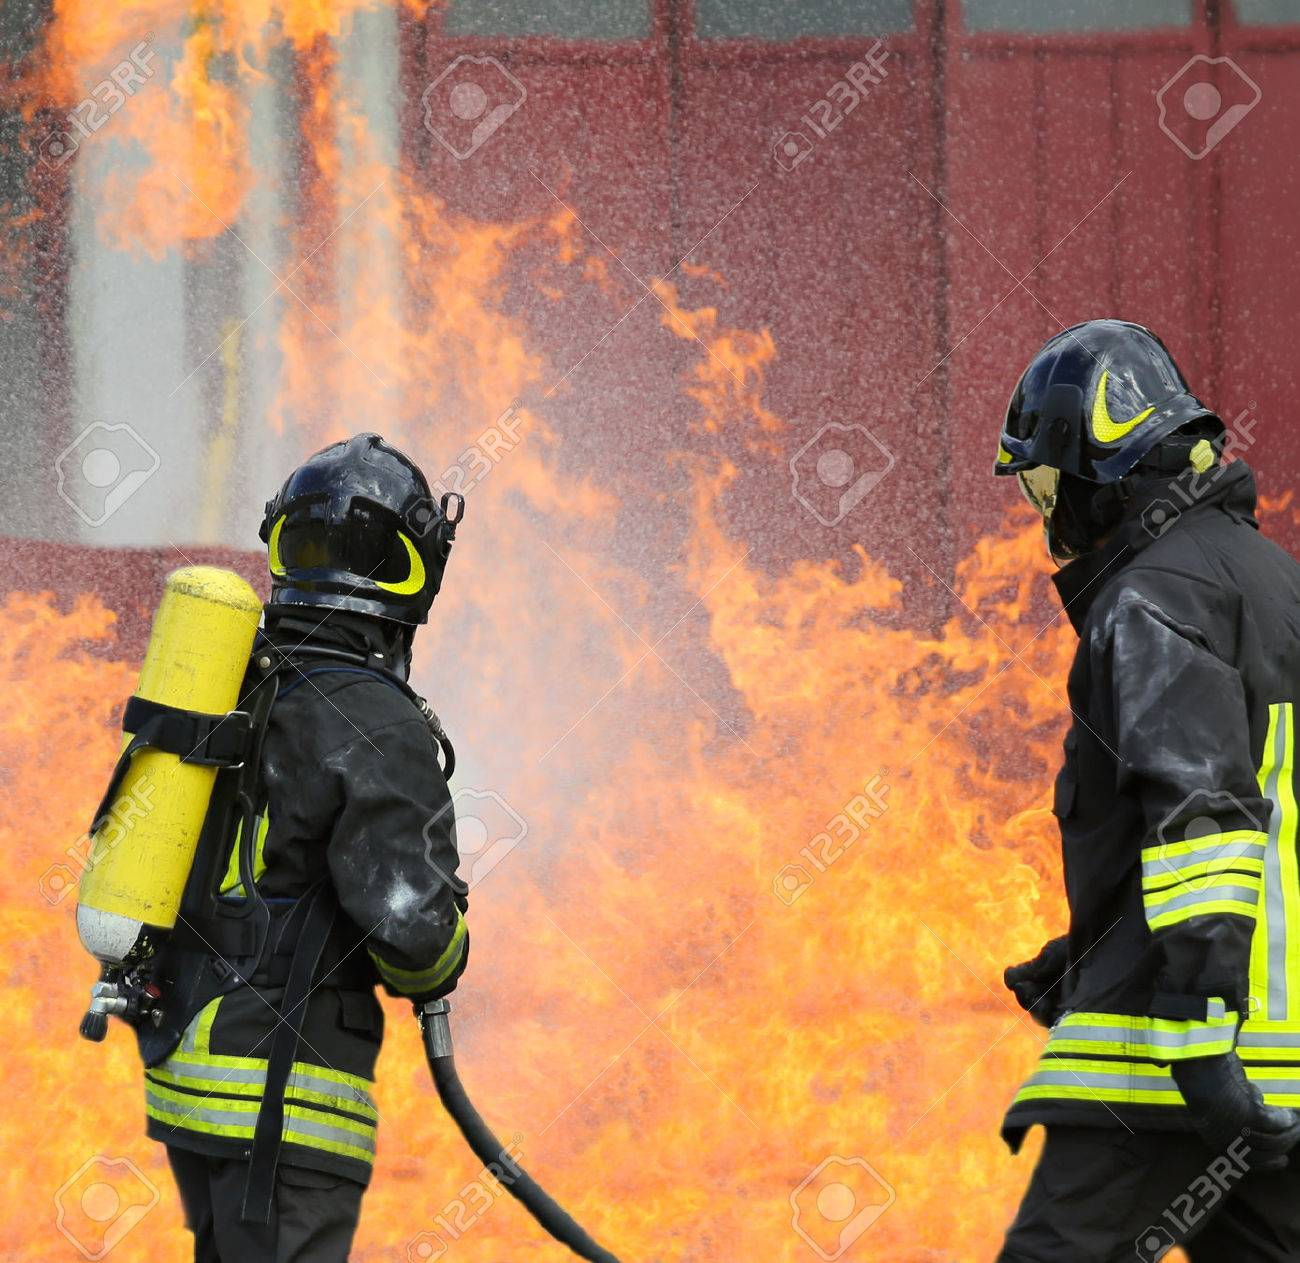 firefighters with oxygen bottles off the fire during a training exercise in Firehouse Stock Photo - 45525189